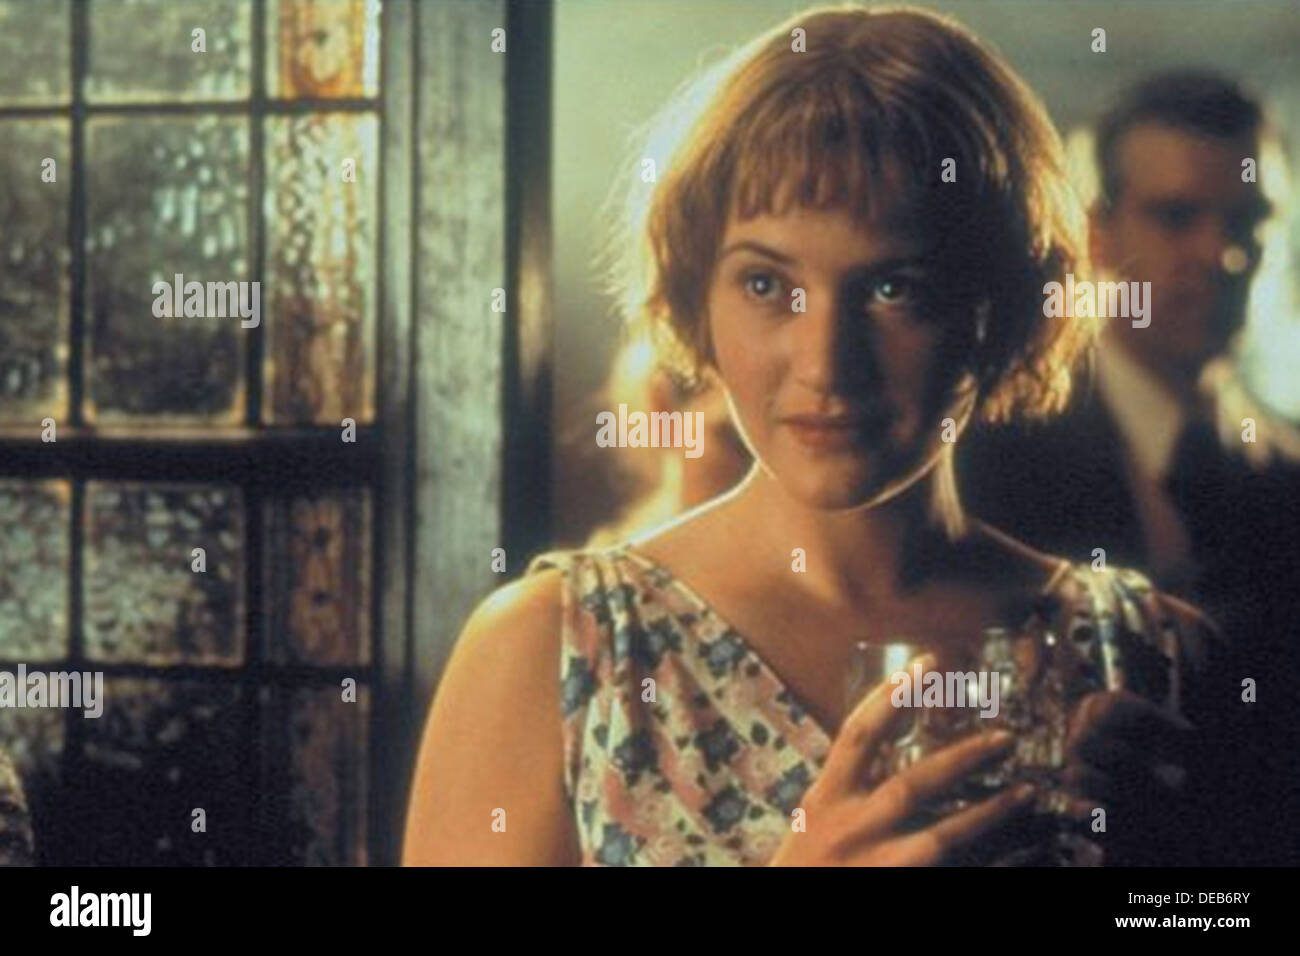 IRIS 2001 Touchstone Pictures Film mit Kate Winslet Stockbild